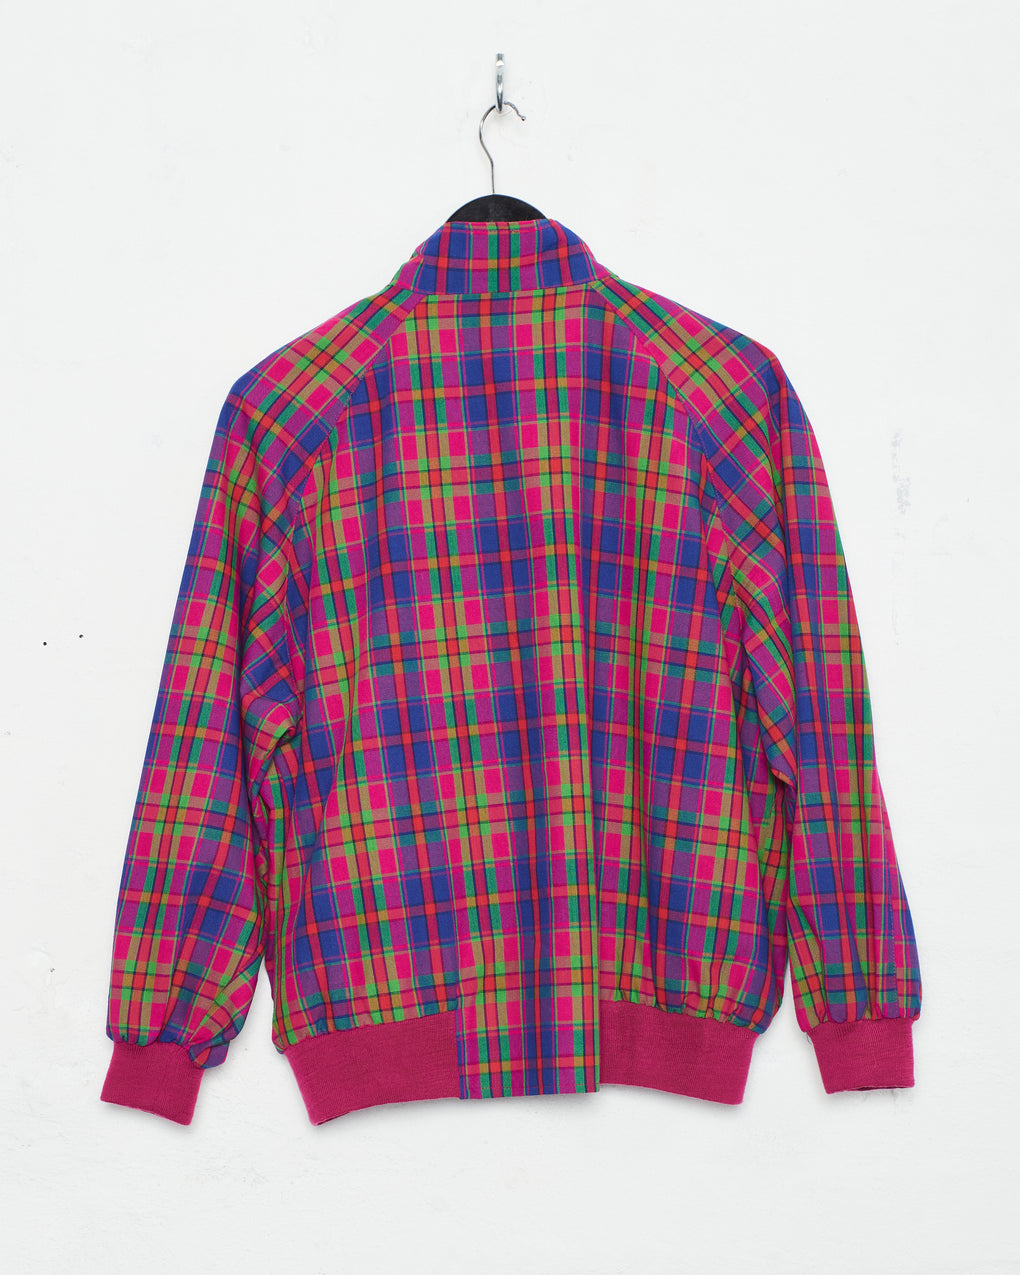 YSL Bomber Pink/Purple (XS) - FROTHLYF